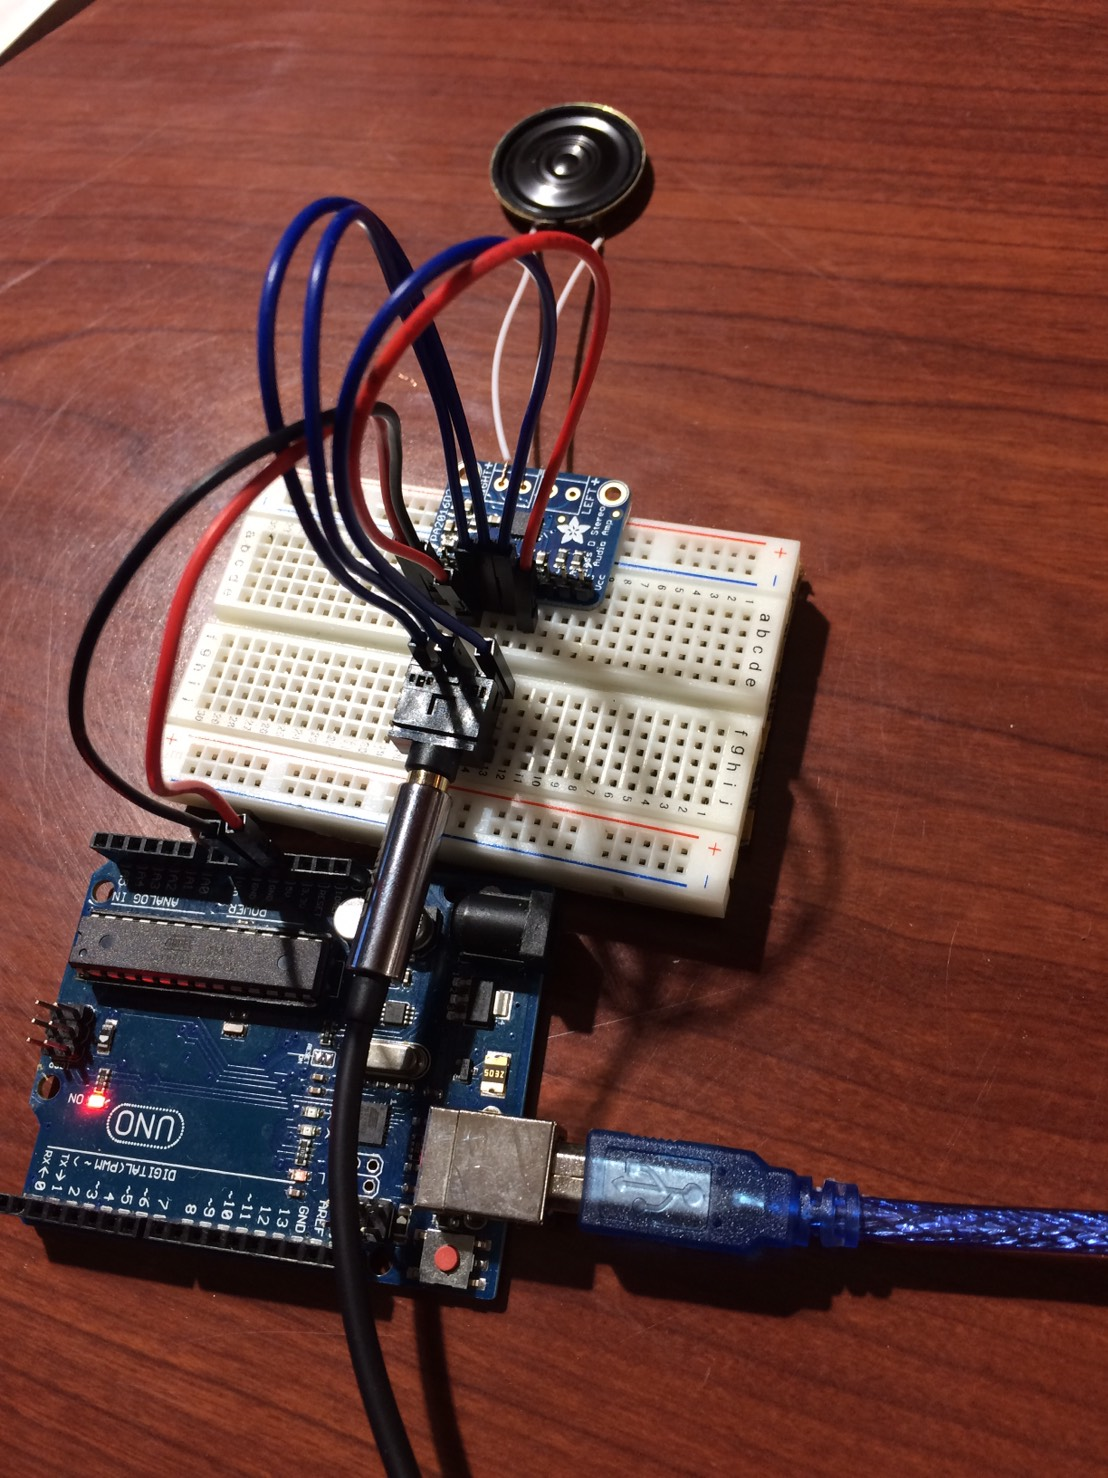 Adafruit Tpa2016 With Arduino Kentaro Tanaka Wiring A Working Breadboard From Circuit Diagram Is Easy If You Can Connect Everything Correctly Get Similar One Like The Image Above Well Phone That Being Connected 35mm Headphone Jack